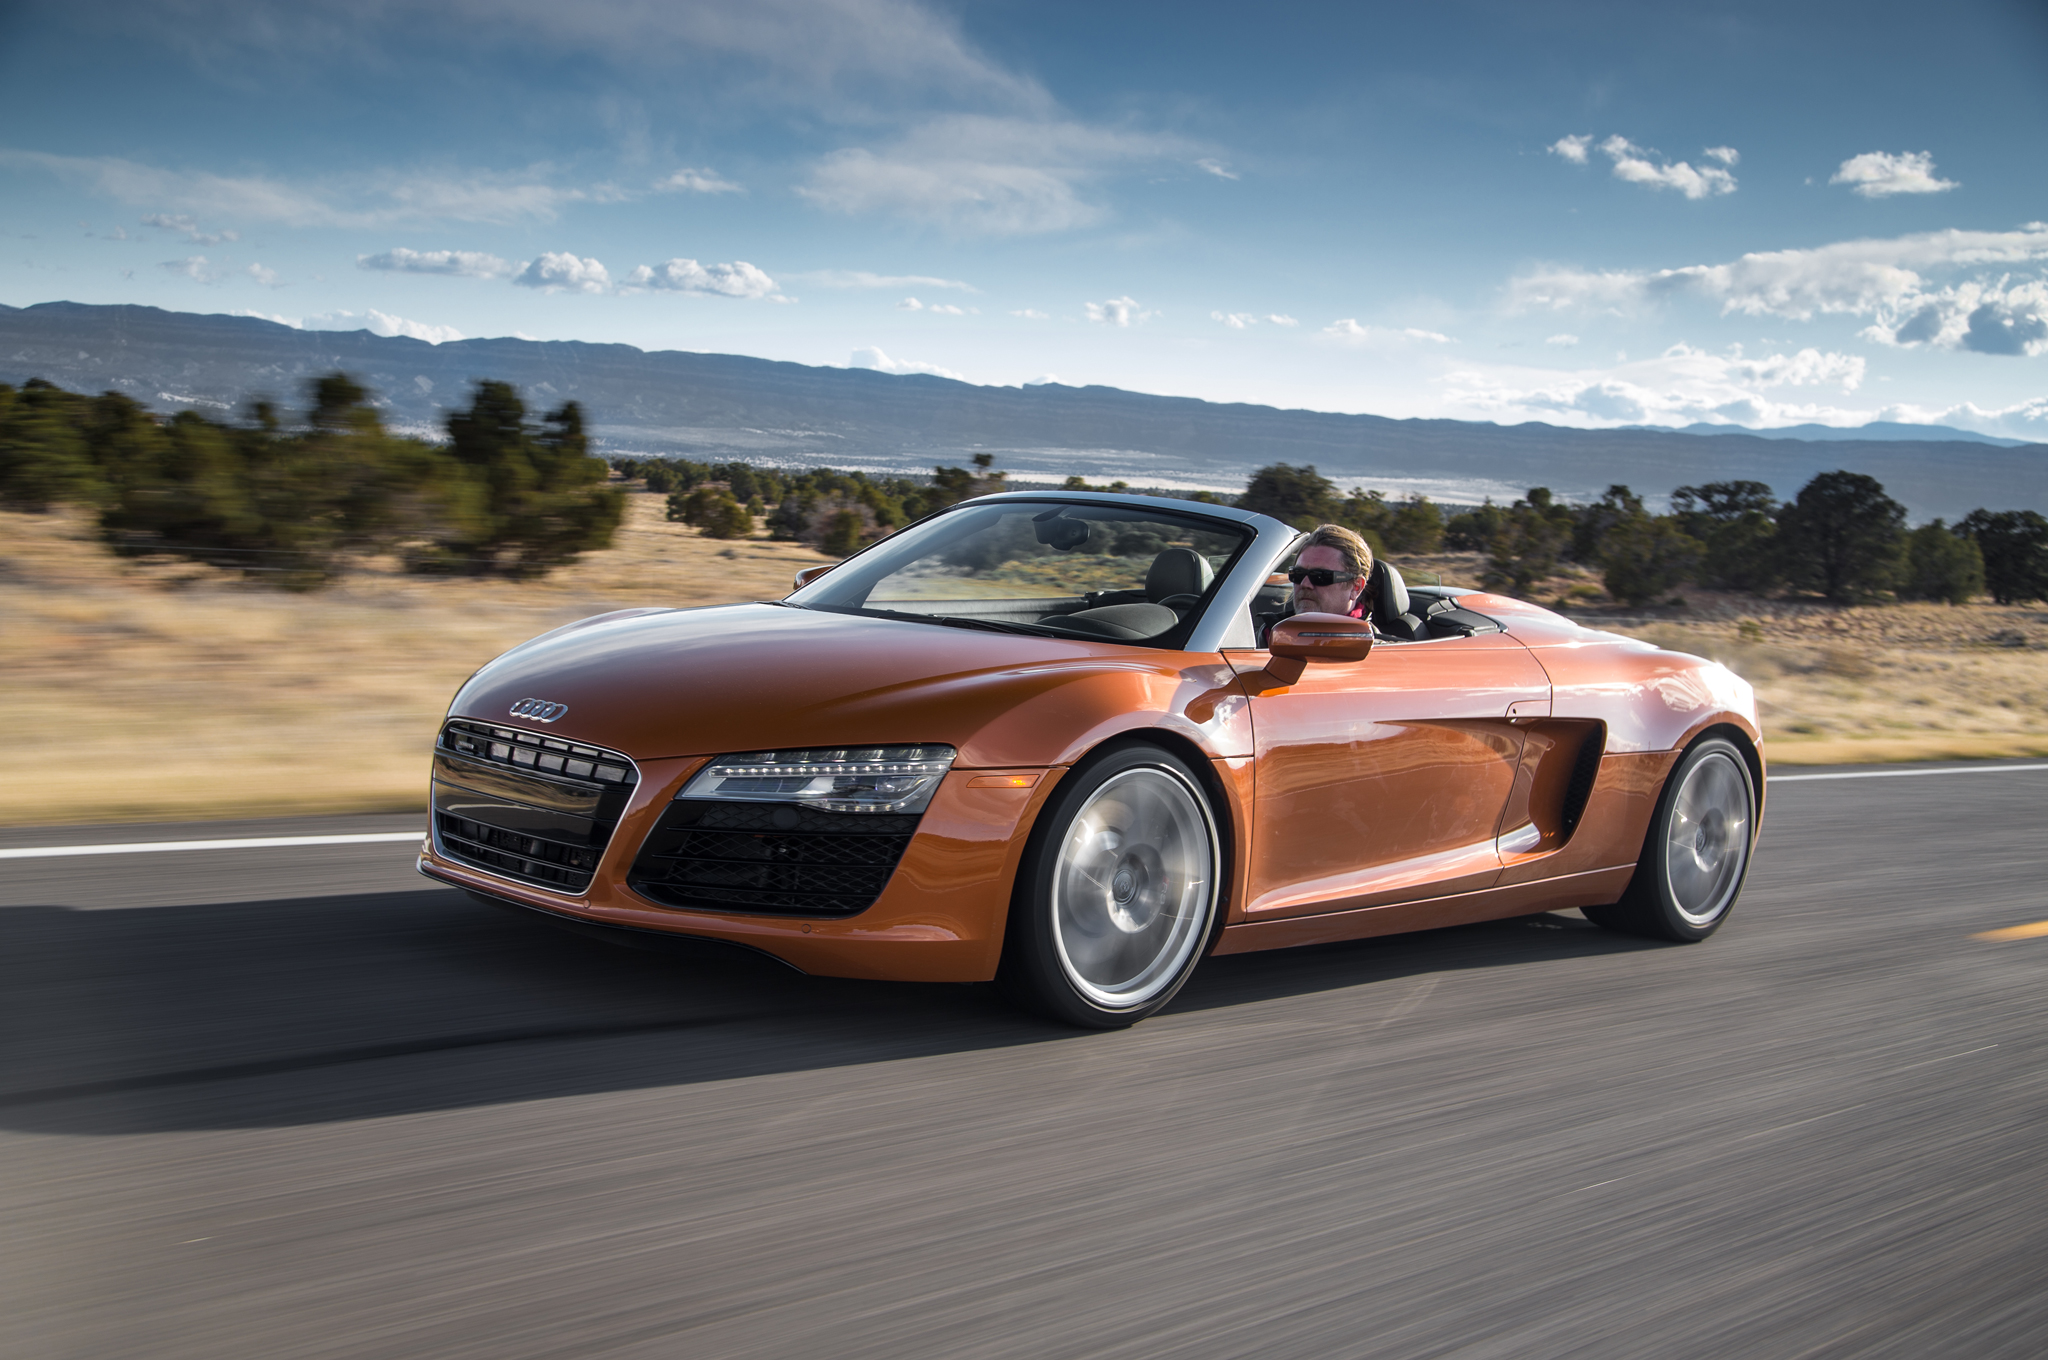 Audi R8 Spyder Matte Black And Orange Supercars Gallery